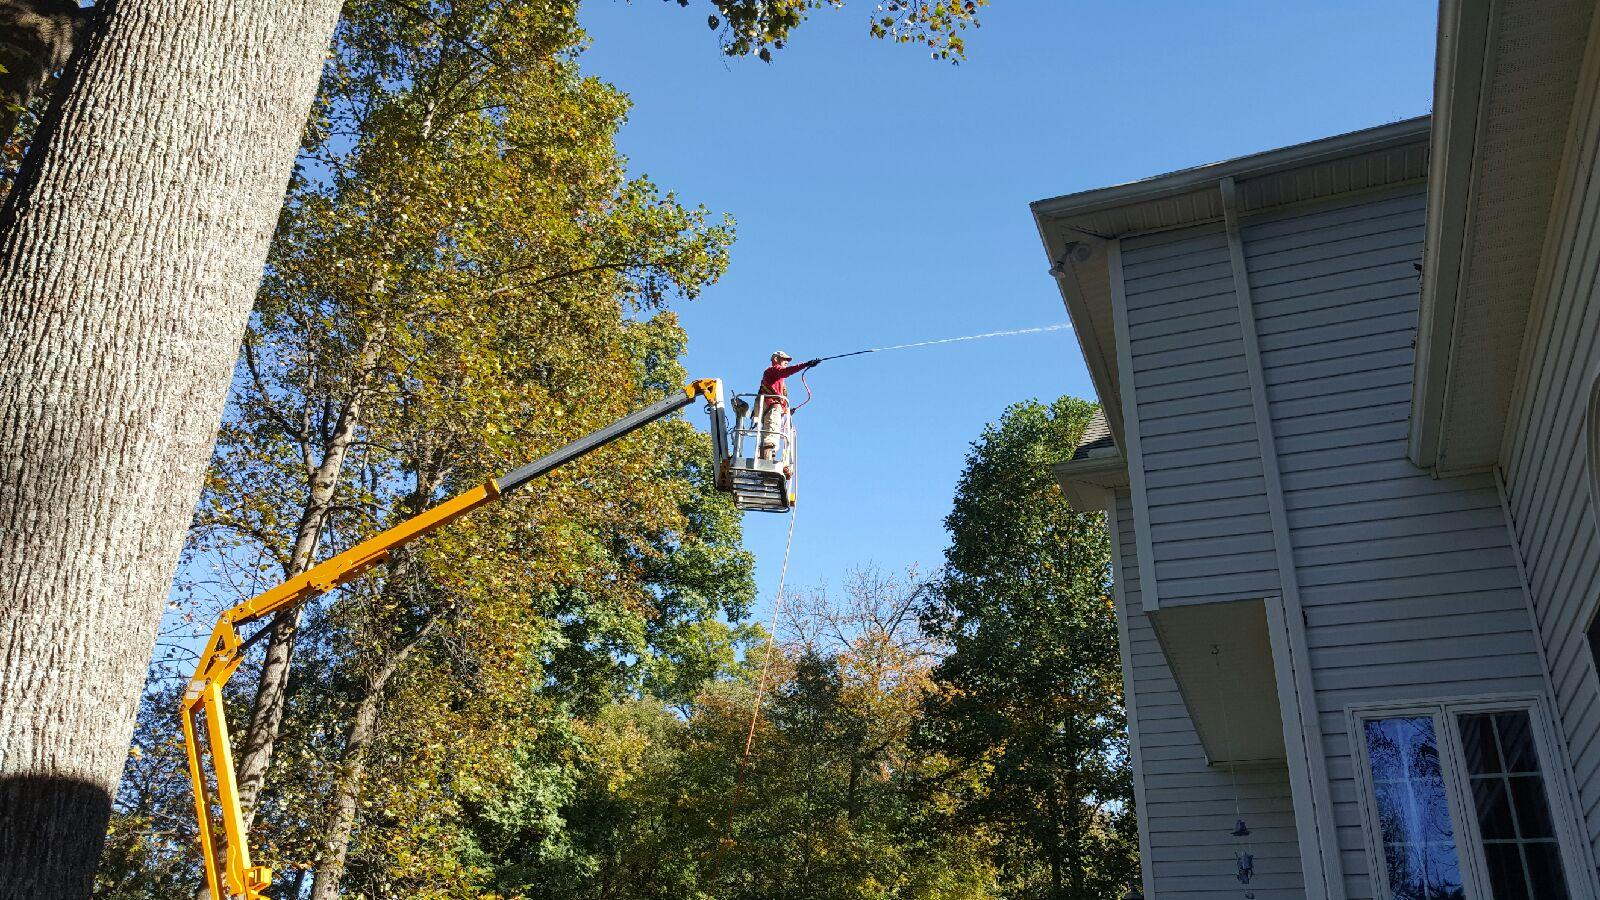 Boom Lift | Sidewalk Cleaning Company in Greencastle PA